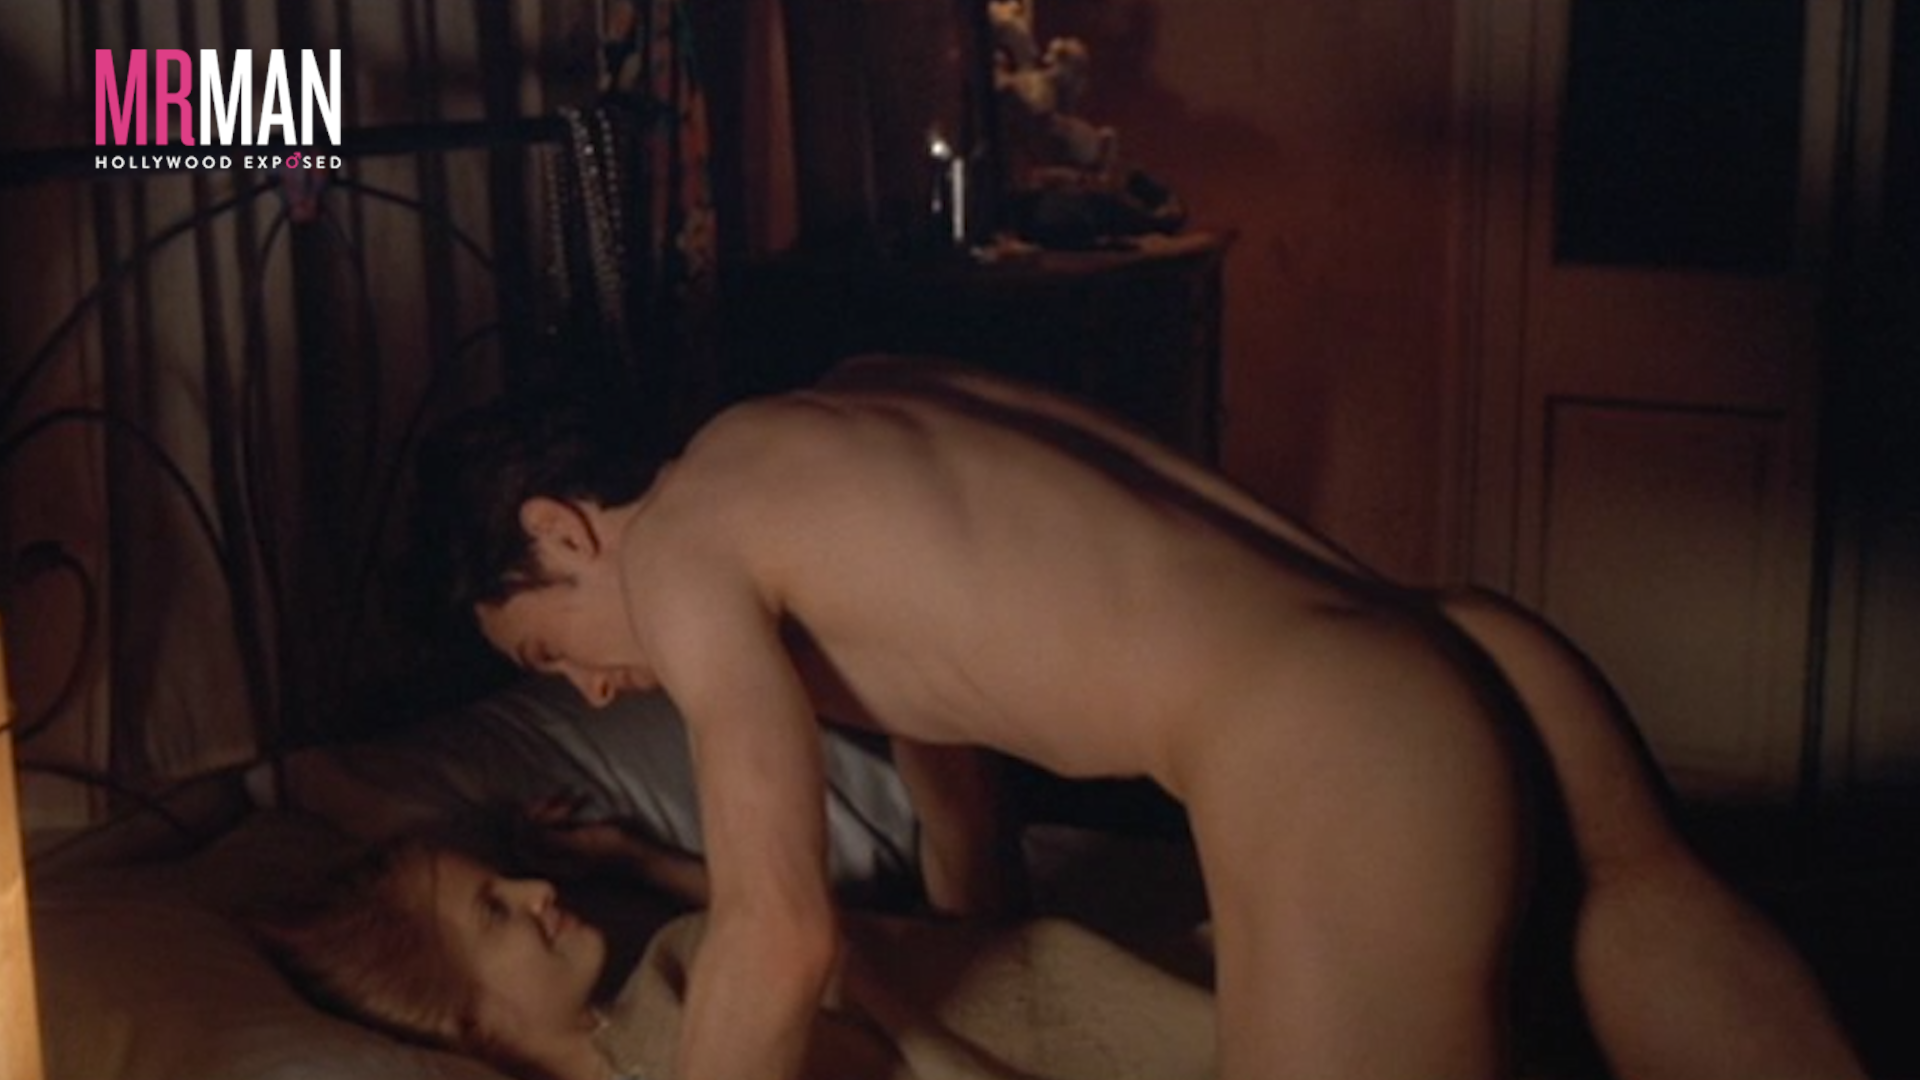 Nude James Franco Will Make You Spanko